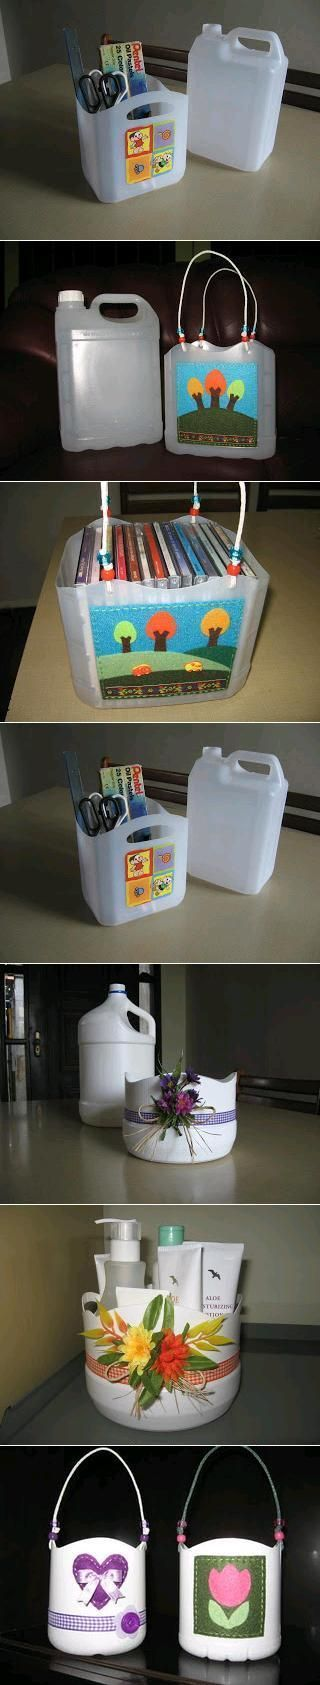 DIY Plastic Bottle Baskets DIY Projects | UsefulDIY.com Follow Us on Facebook ==> http://www.facebook.com/UsefulDiy